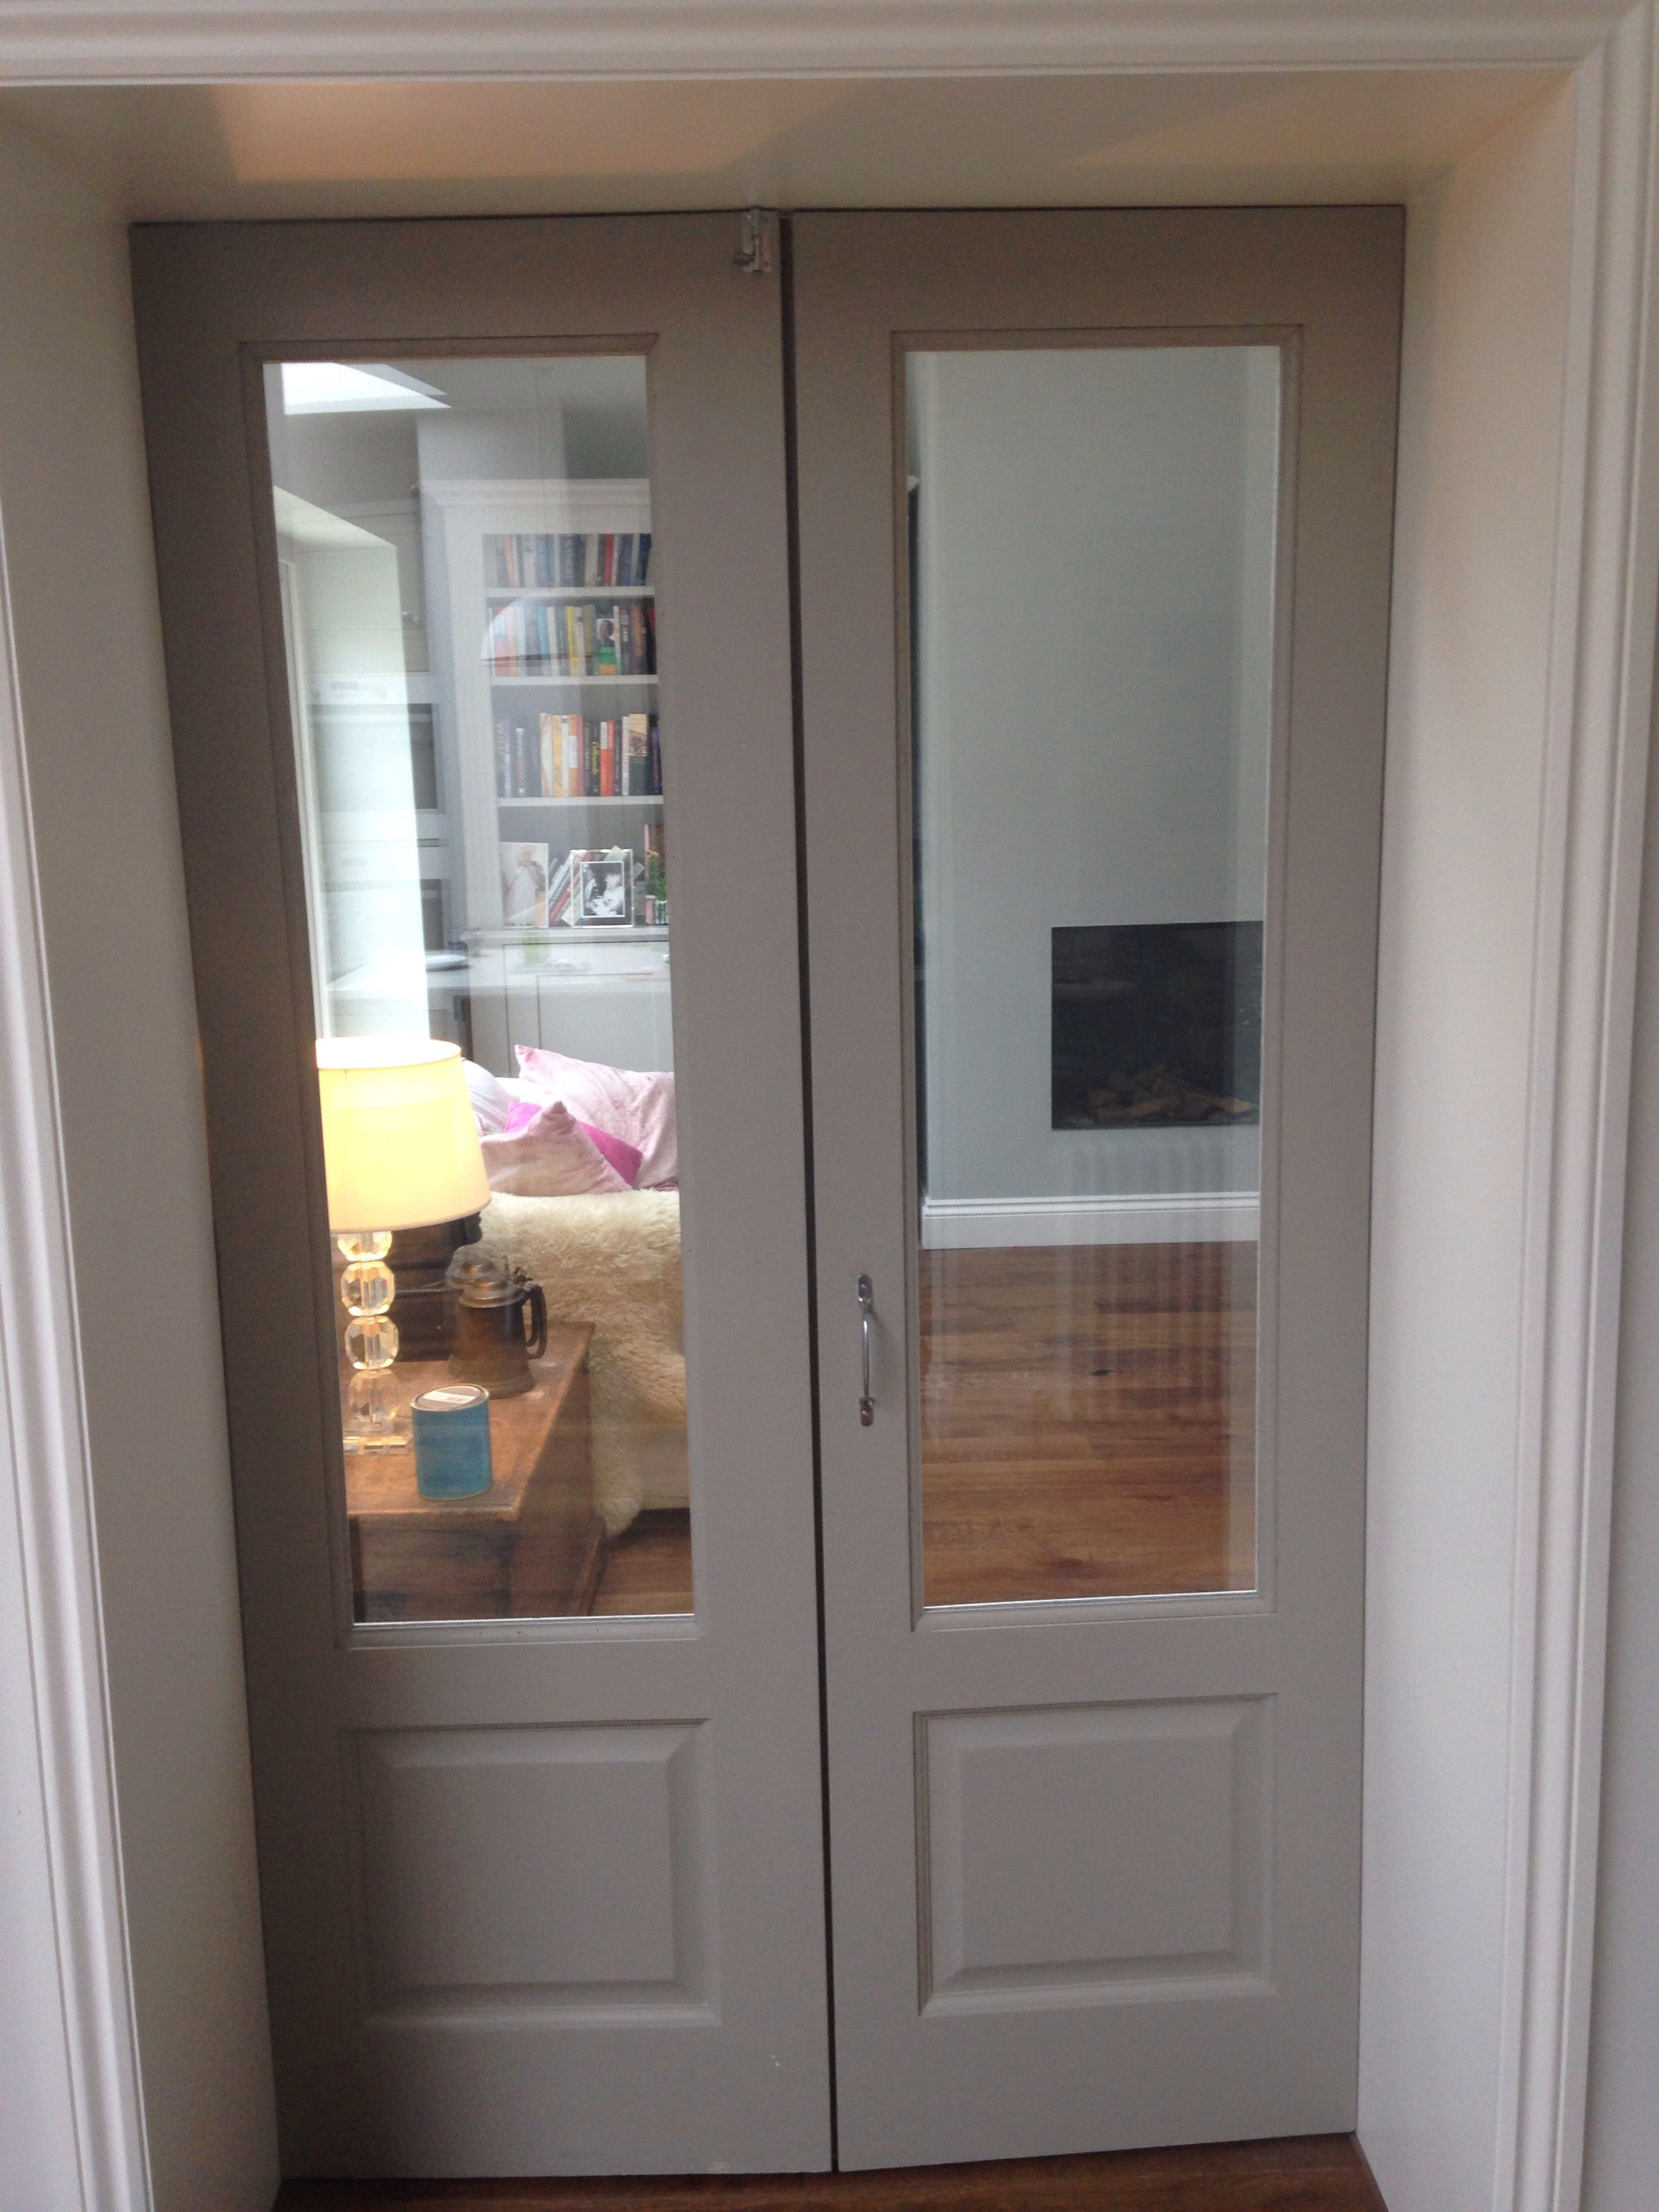 My Interior Glazed Doors Painted Hardwick White Farrow Ball Reno